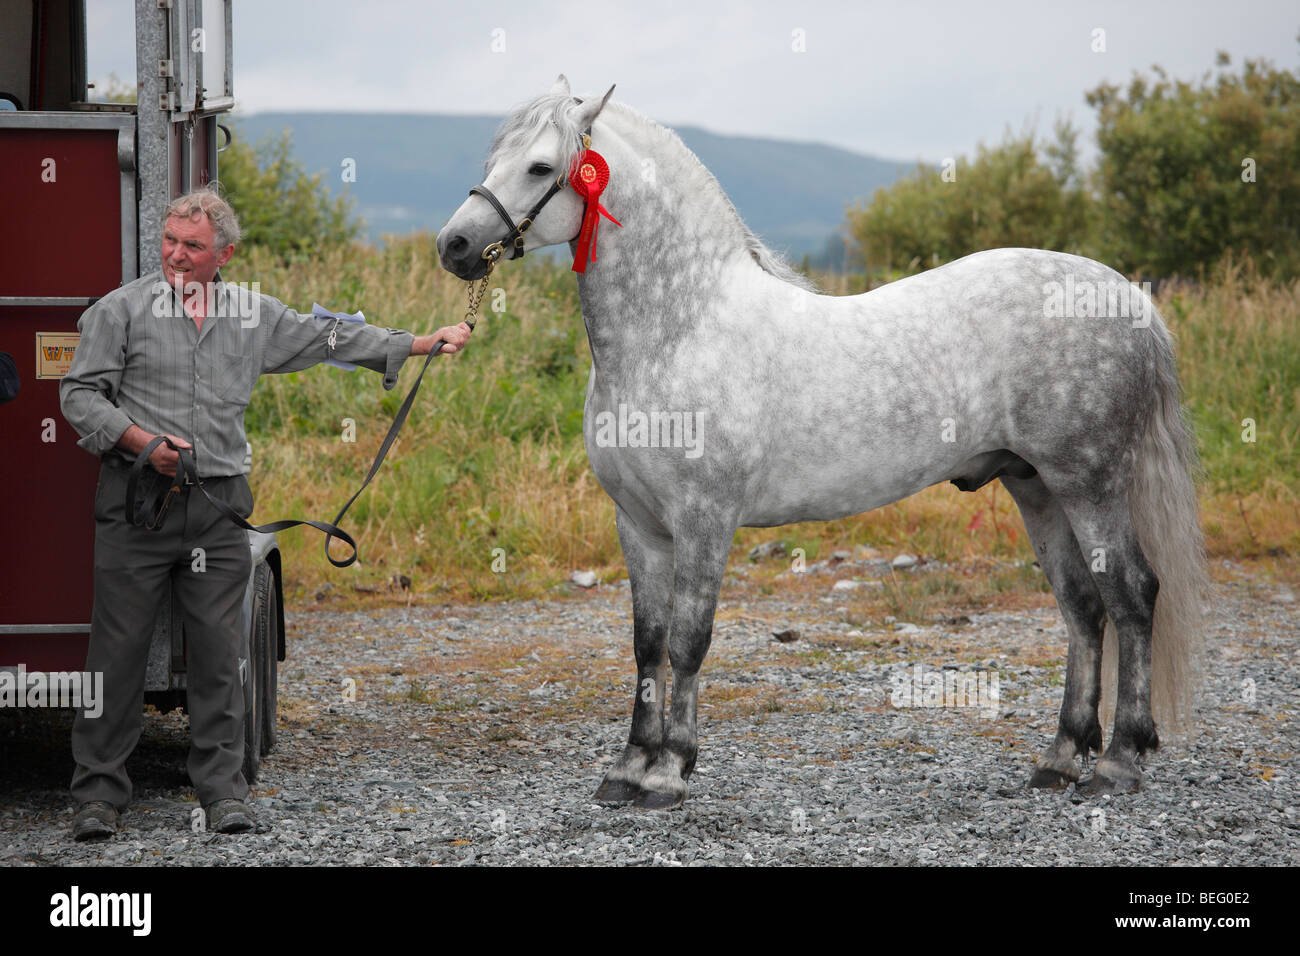 breeder with a Connemara Pony stallion at the Maam Cross Pony Show  in July 2008, Ireland - Stock Image